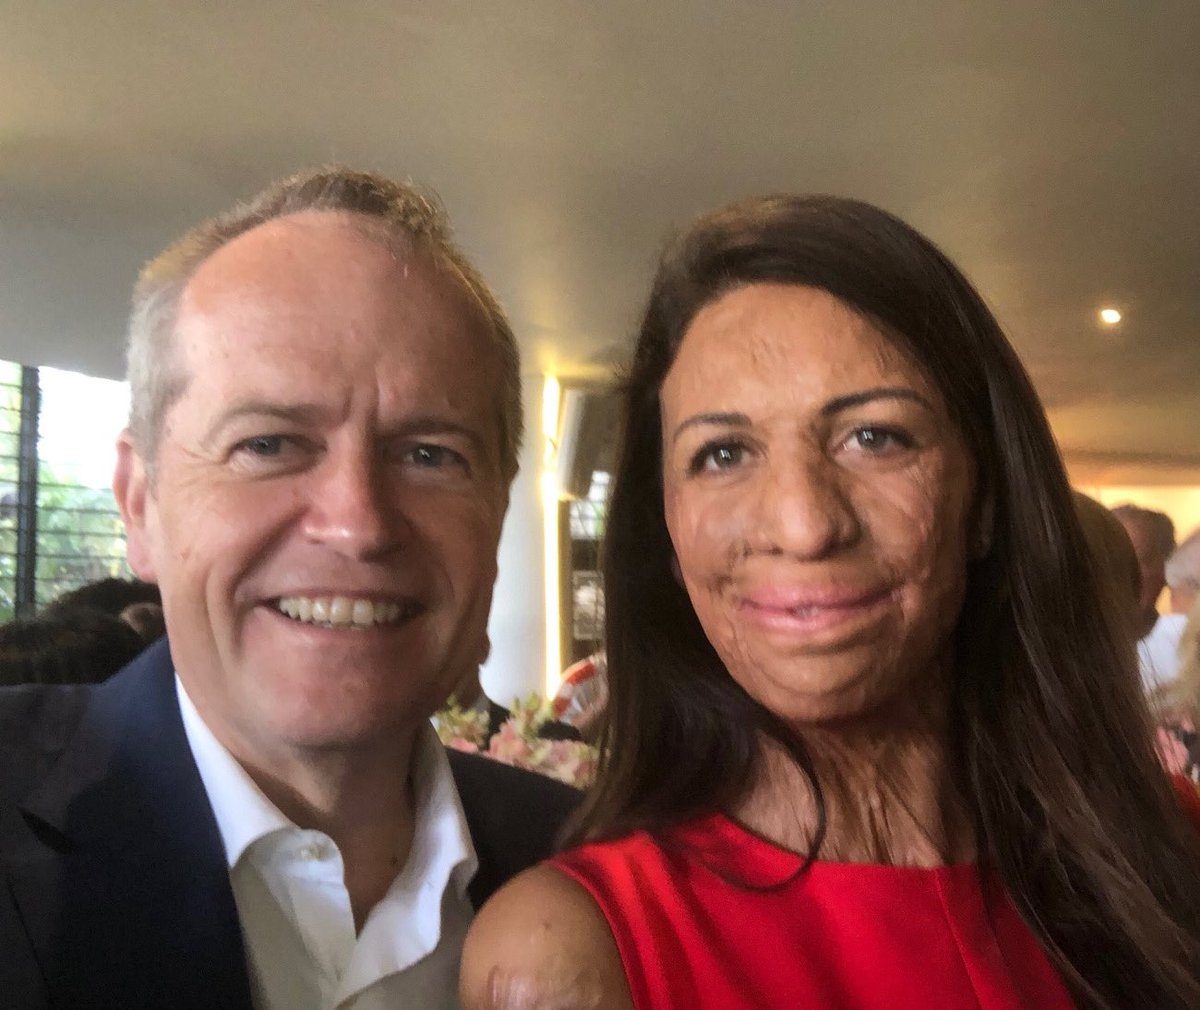 Fantastic to meet @TuriaPitt this morning. Just a truly inspirational Australian.